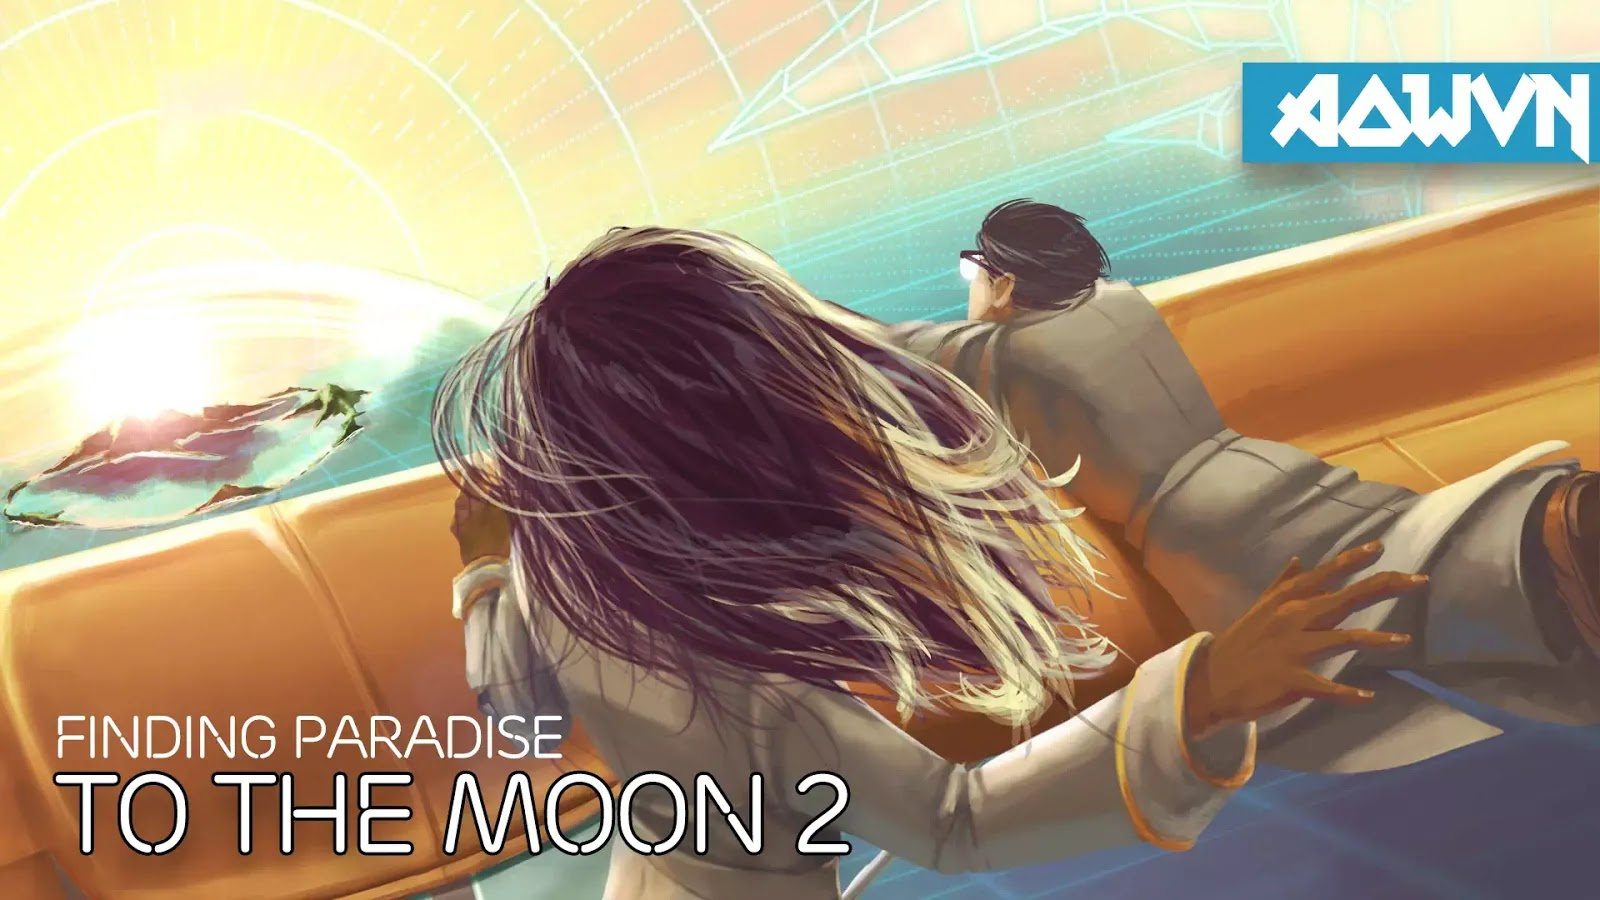 to the moon 2 aowvn - [ HOT ] To The Moon 2 : Finding Paradise Việt Hoá Tiếng Việt | Game Android PC - Tuyệt Hay